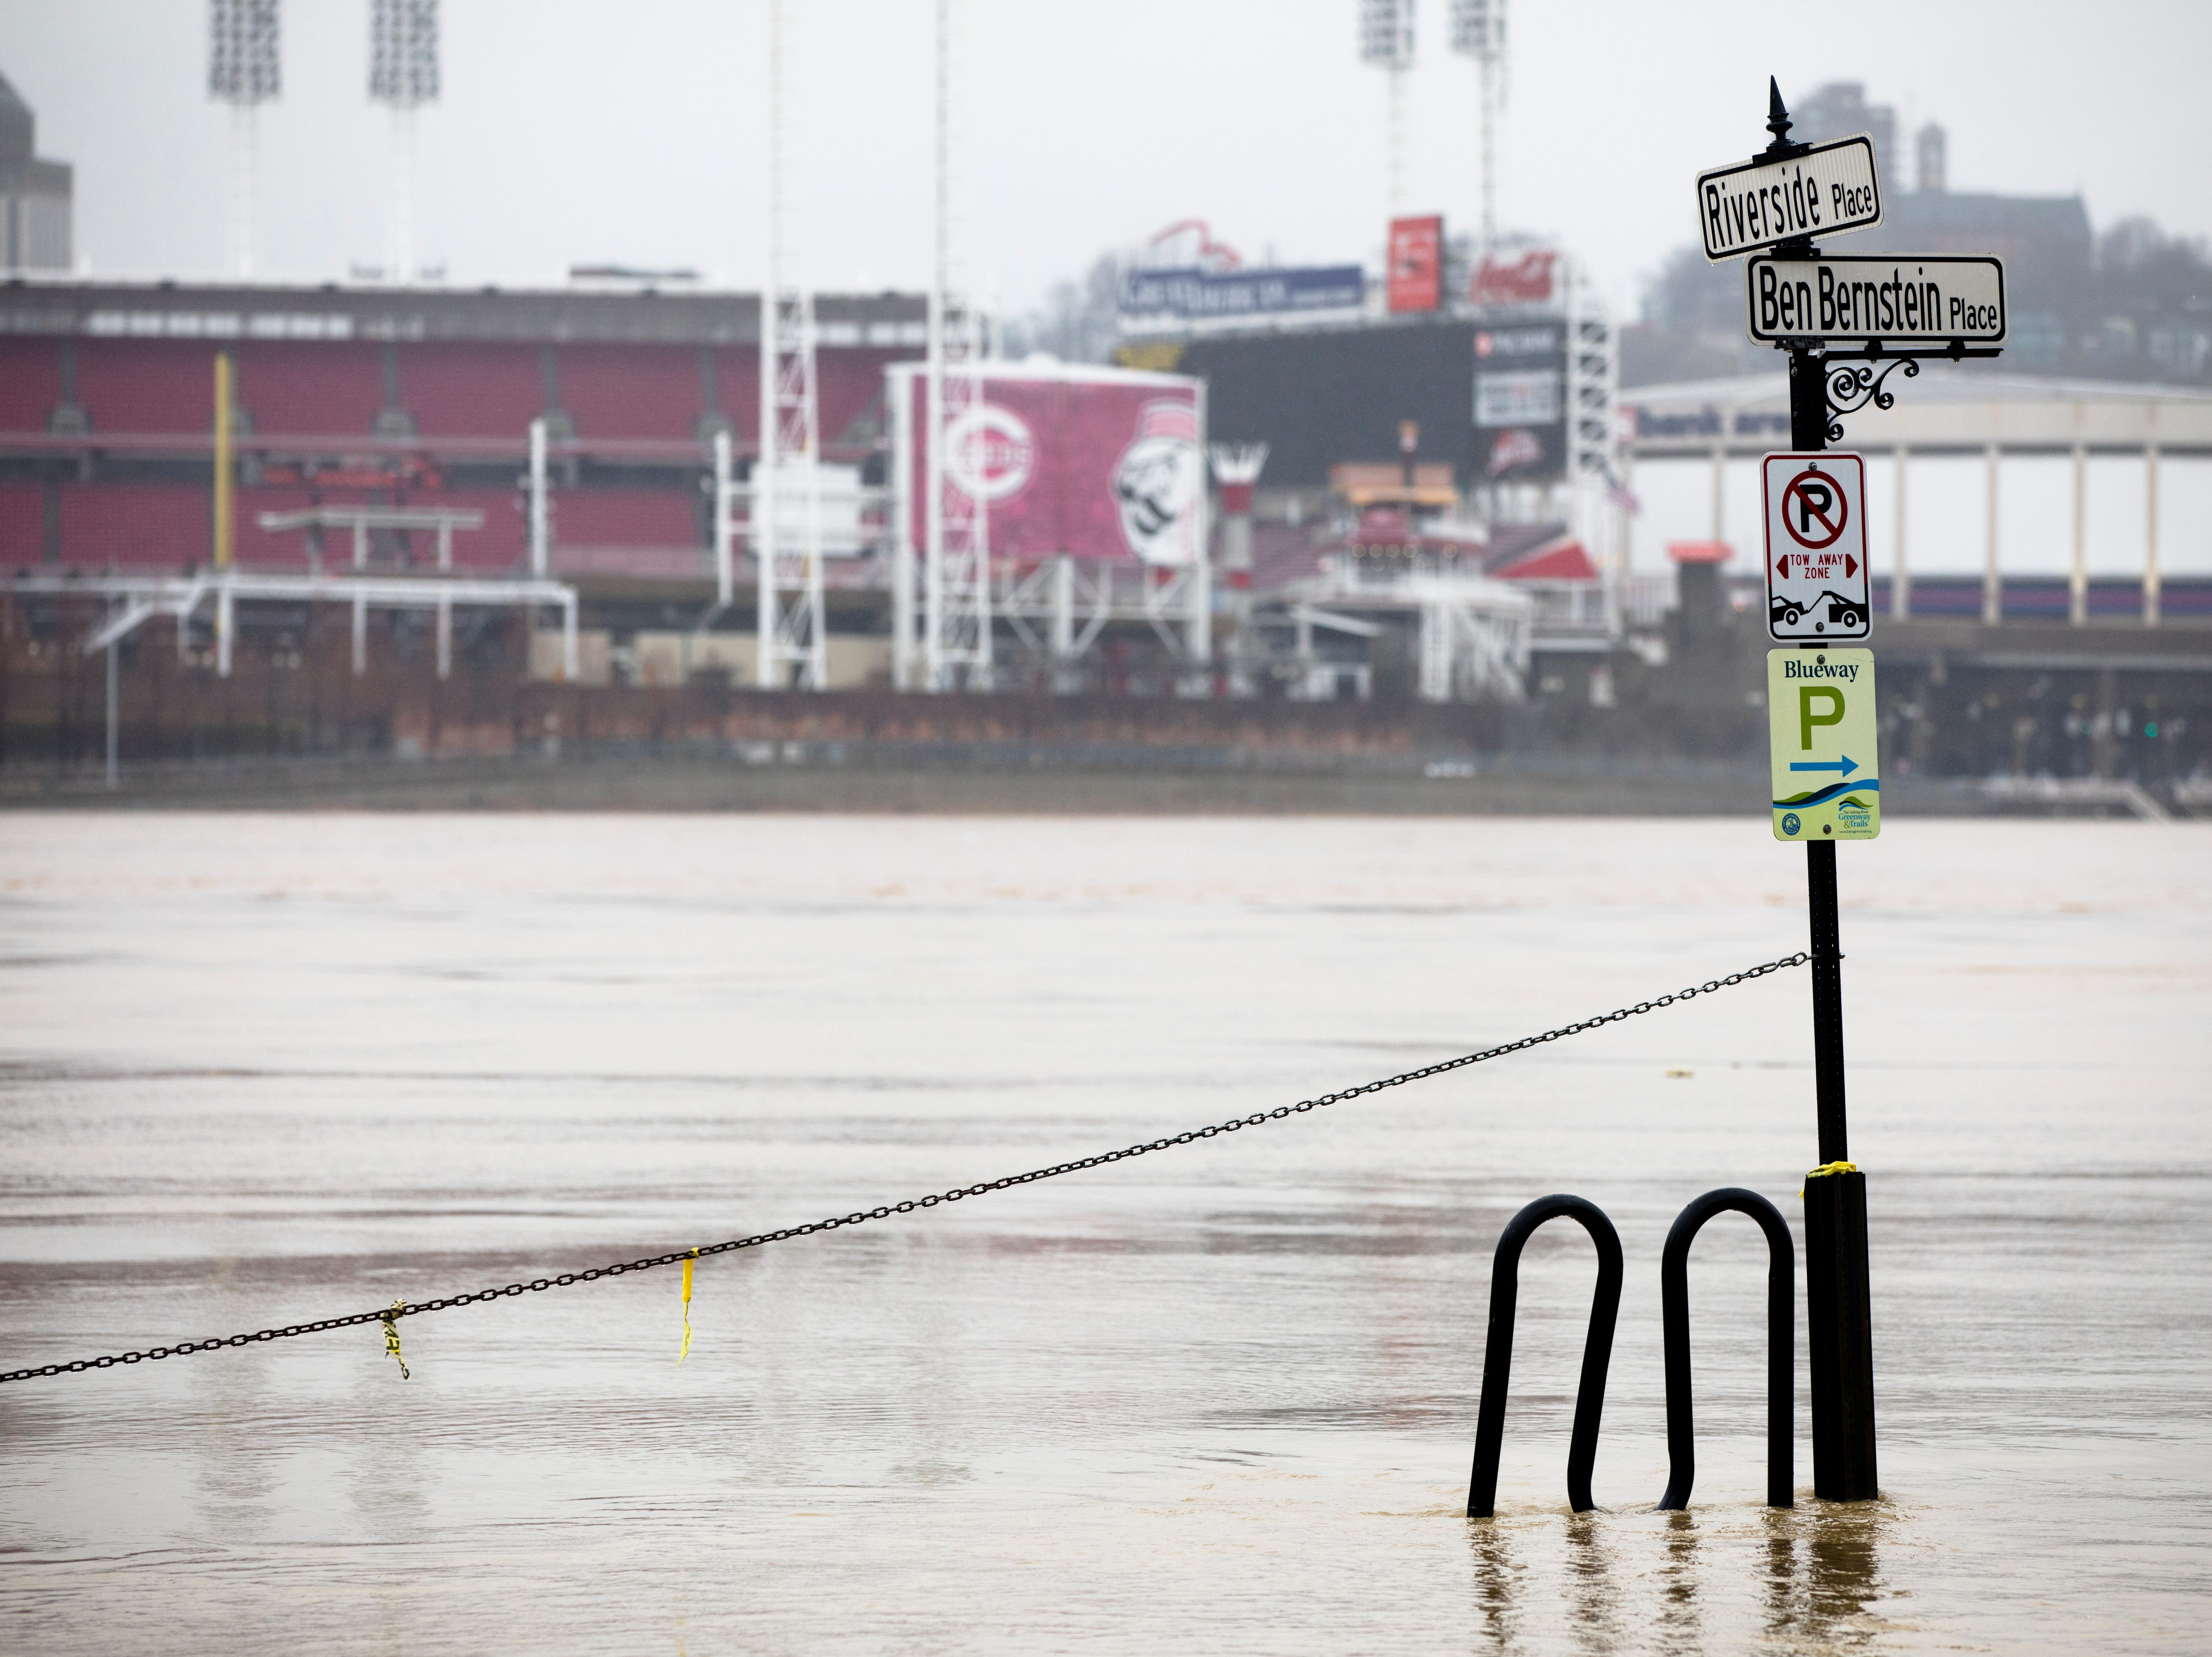 The Ohio River floods the intersection at Riverside Place and Ben Bernstein Place in Covington on Tuesday, Feb. 12, 2019. The Ohio River is expected to crest at 56.3 feet at 1 a.m. Wednesday, Feb. 13.